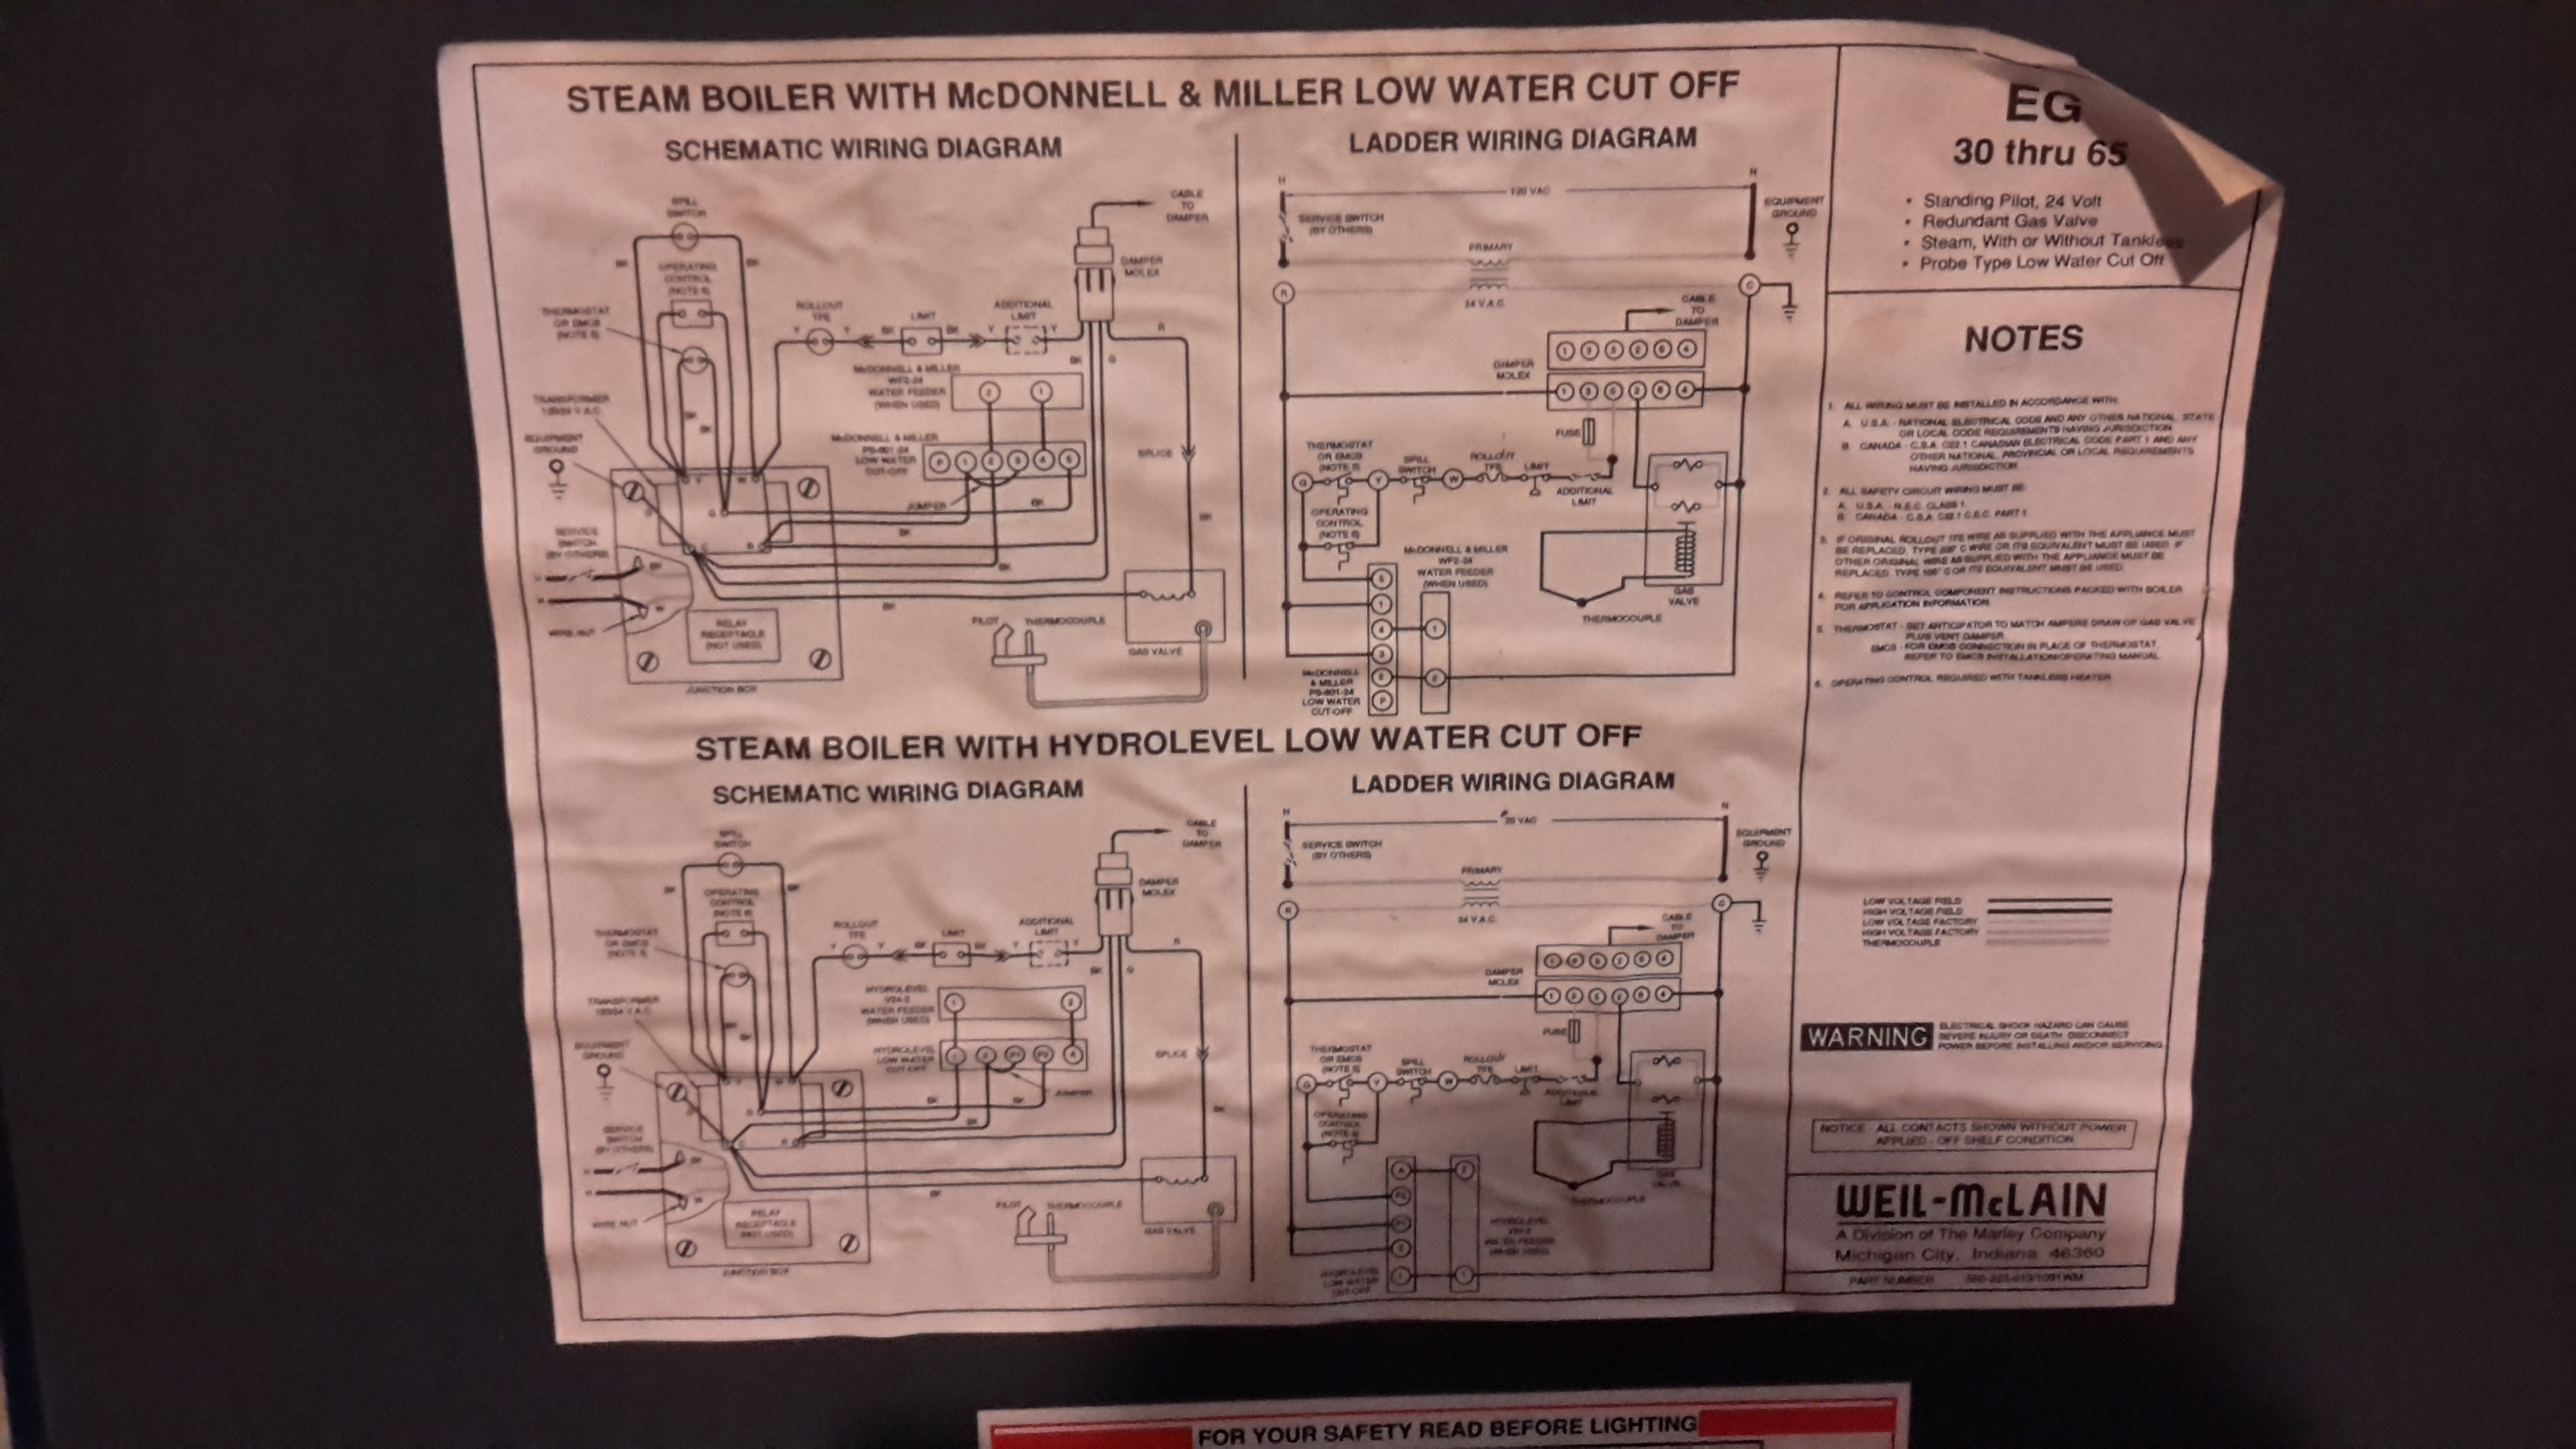 134cfa6b24de7c89220b79944b0039 mcdonnell miller 065s wiring diagram mcdonnell miller low water  at crackthecode.co